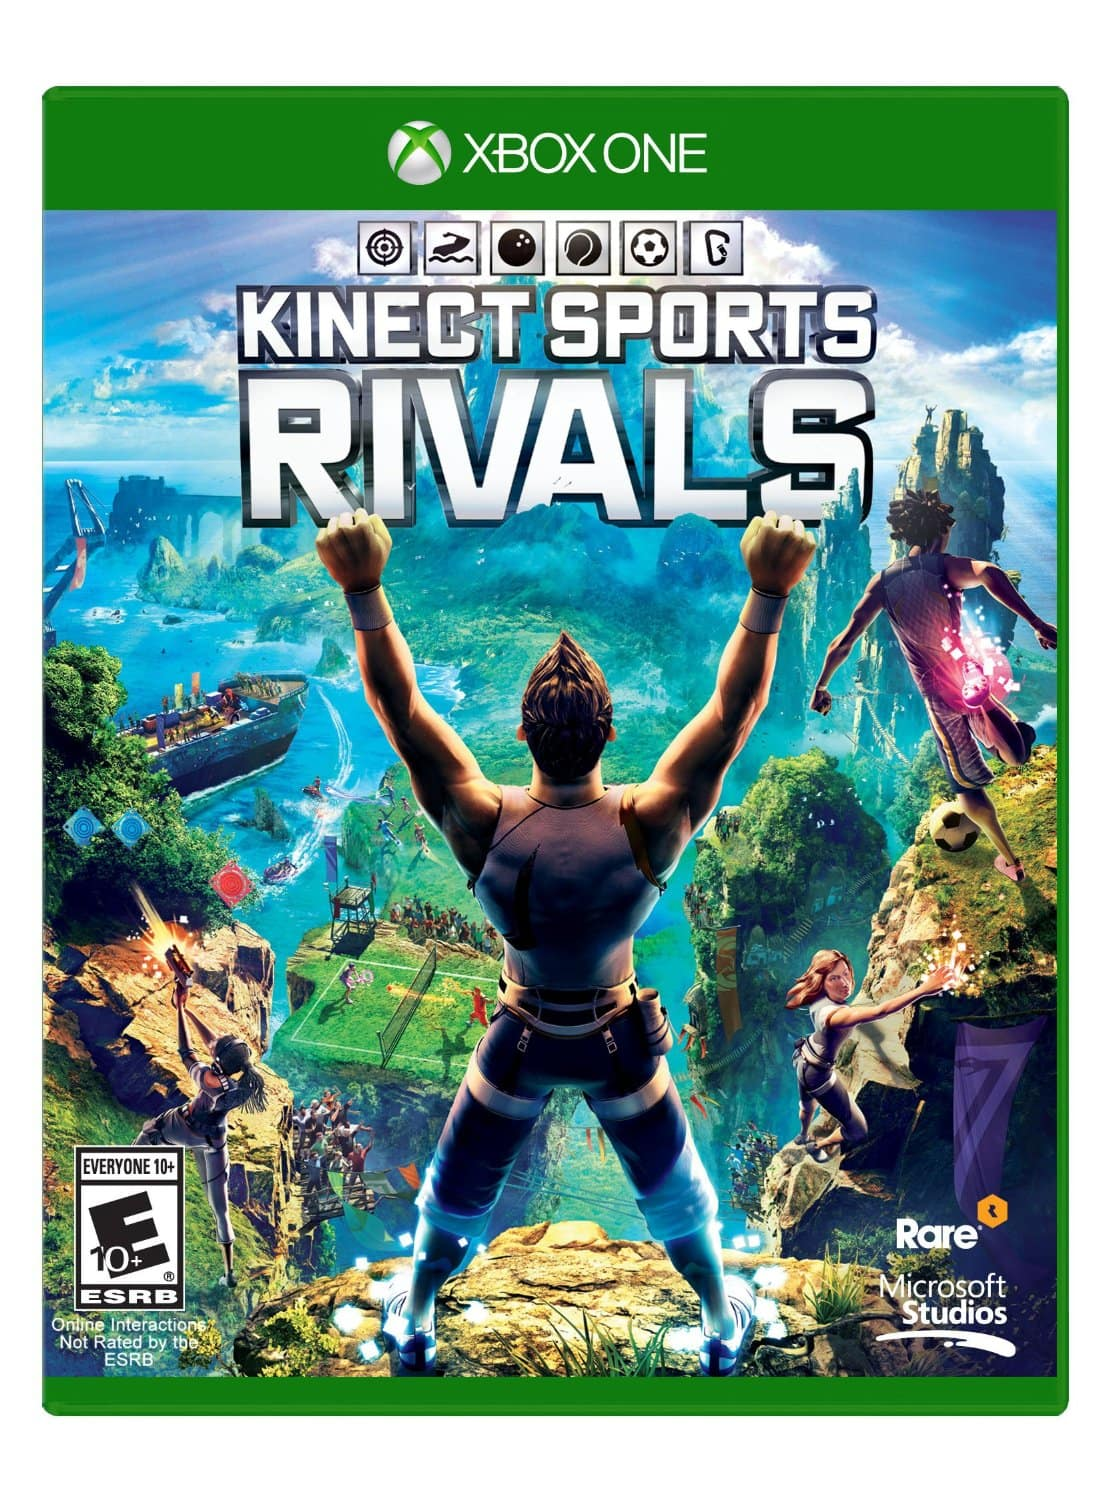 Kinect Sports Rivals Xbox One (Digital Delivery) - $22.41 at CDKeys.com